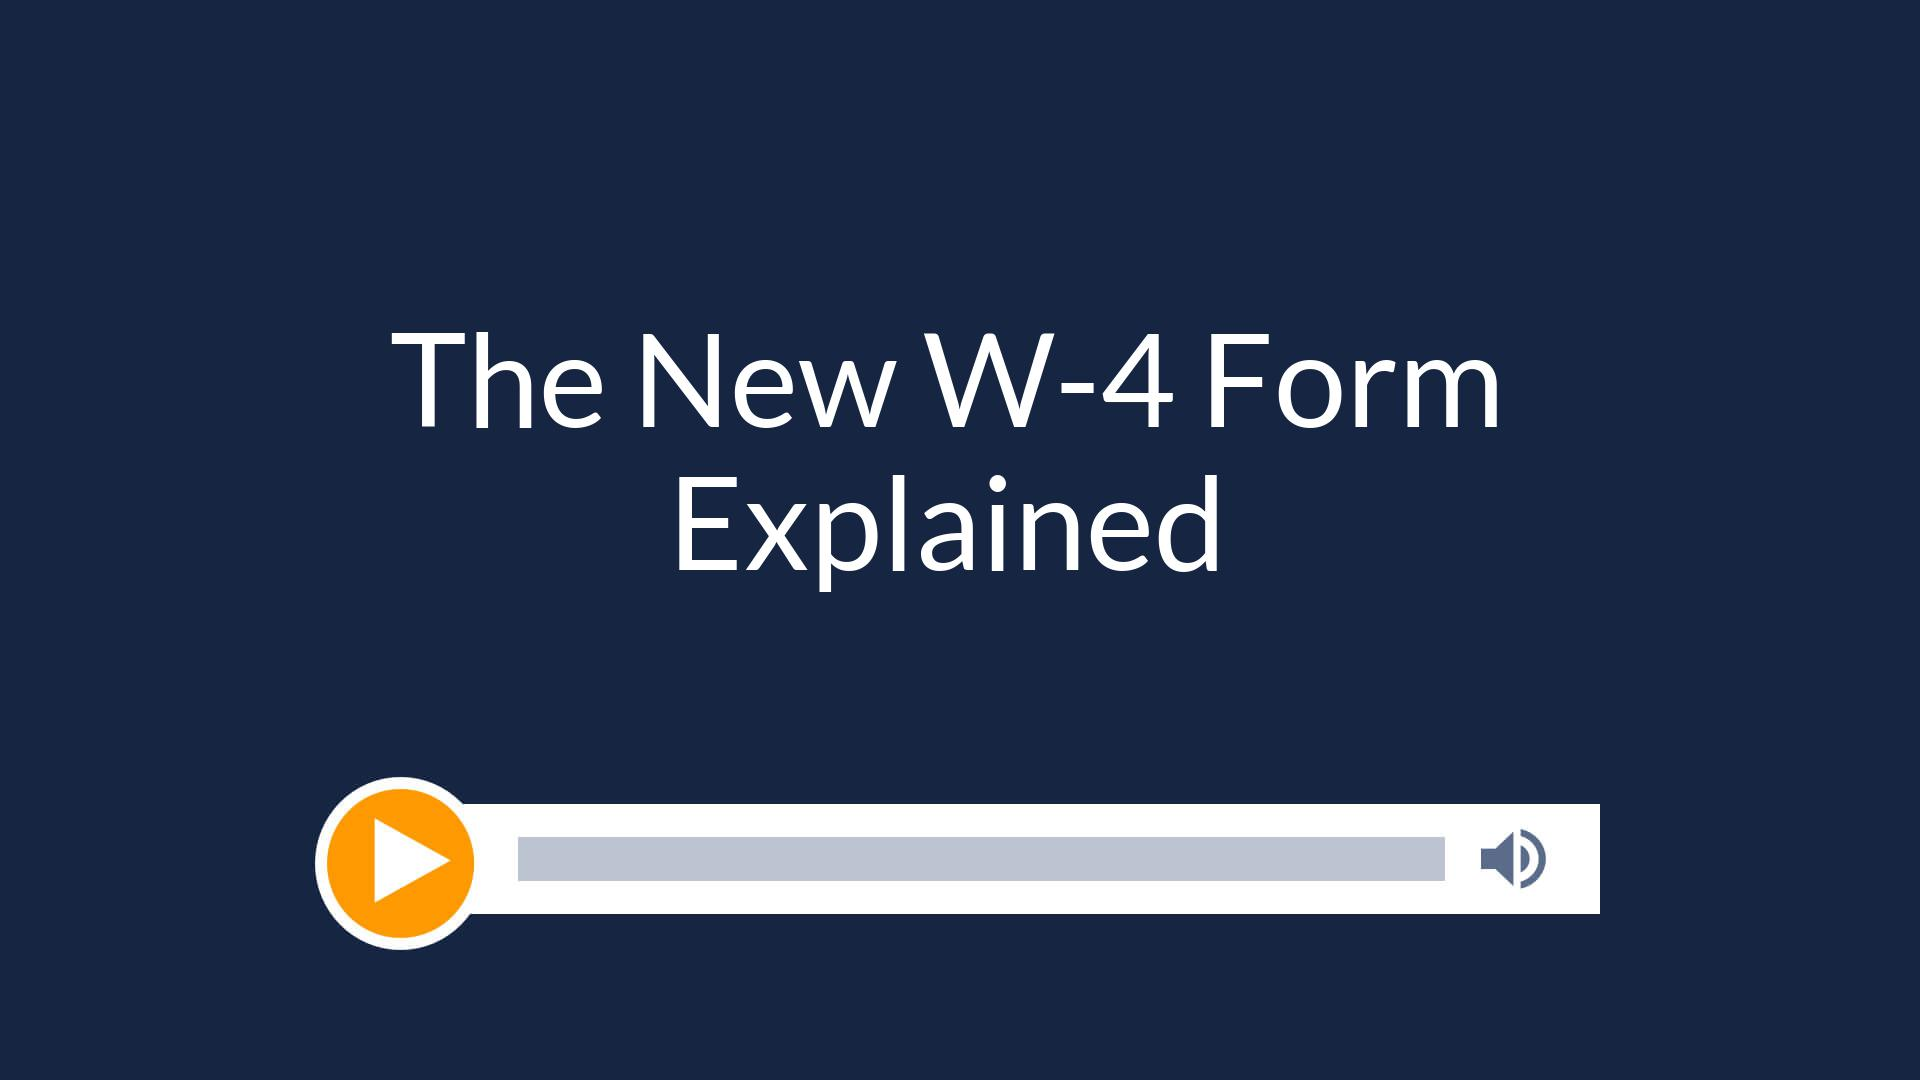 The New W-4 Form Explained